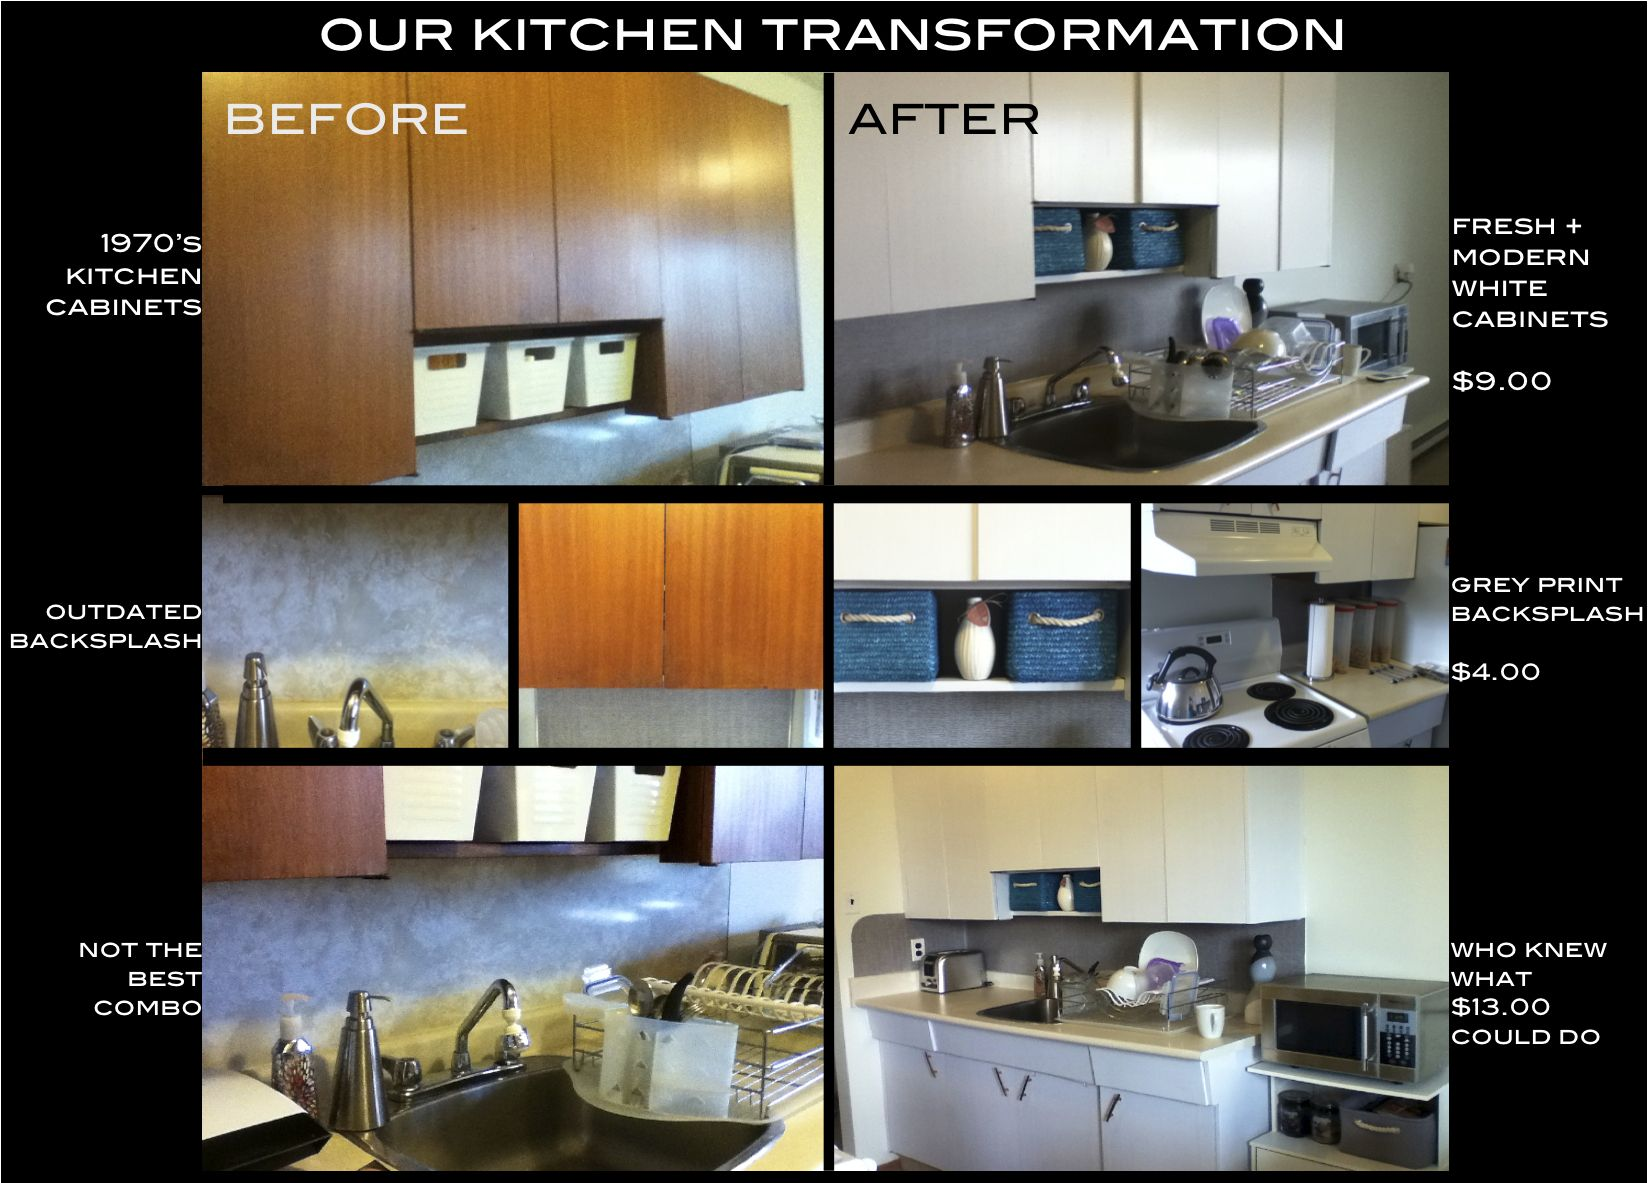 Reno D Our Kitchen In Contact Paper For 13 Bucks White Contact